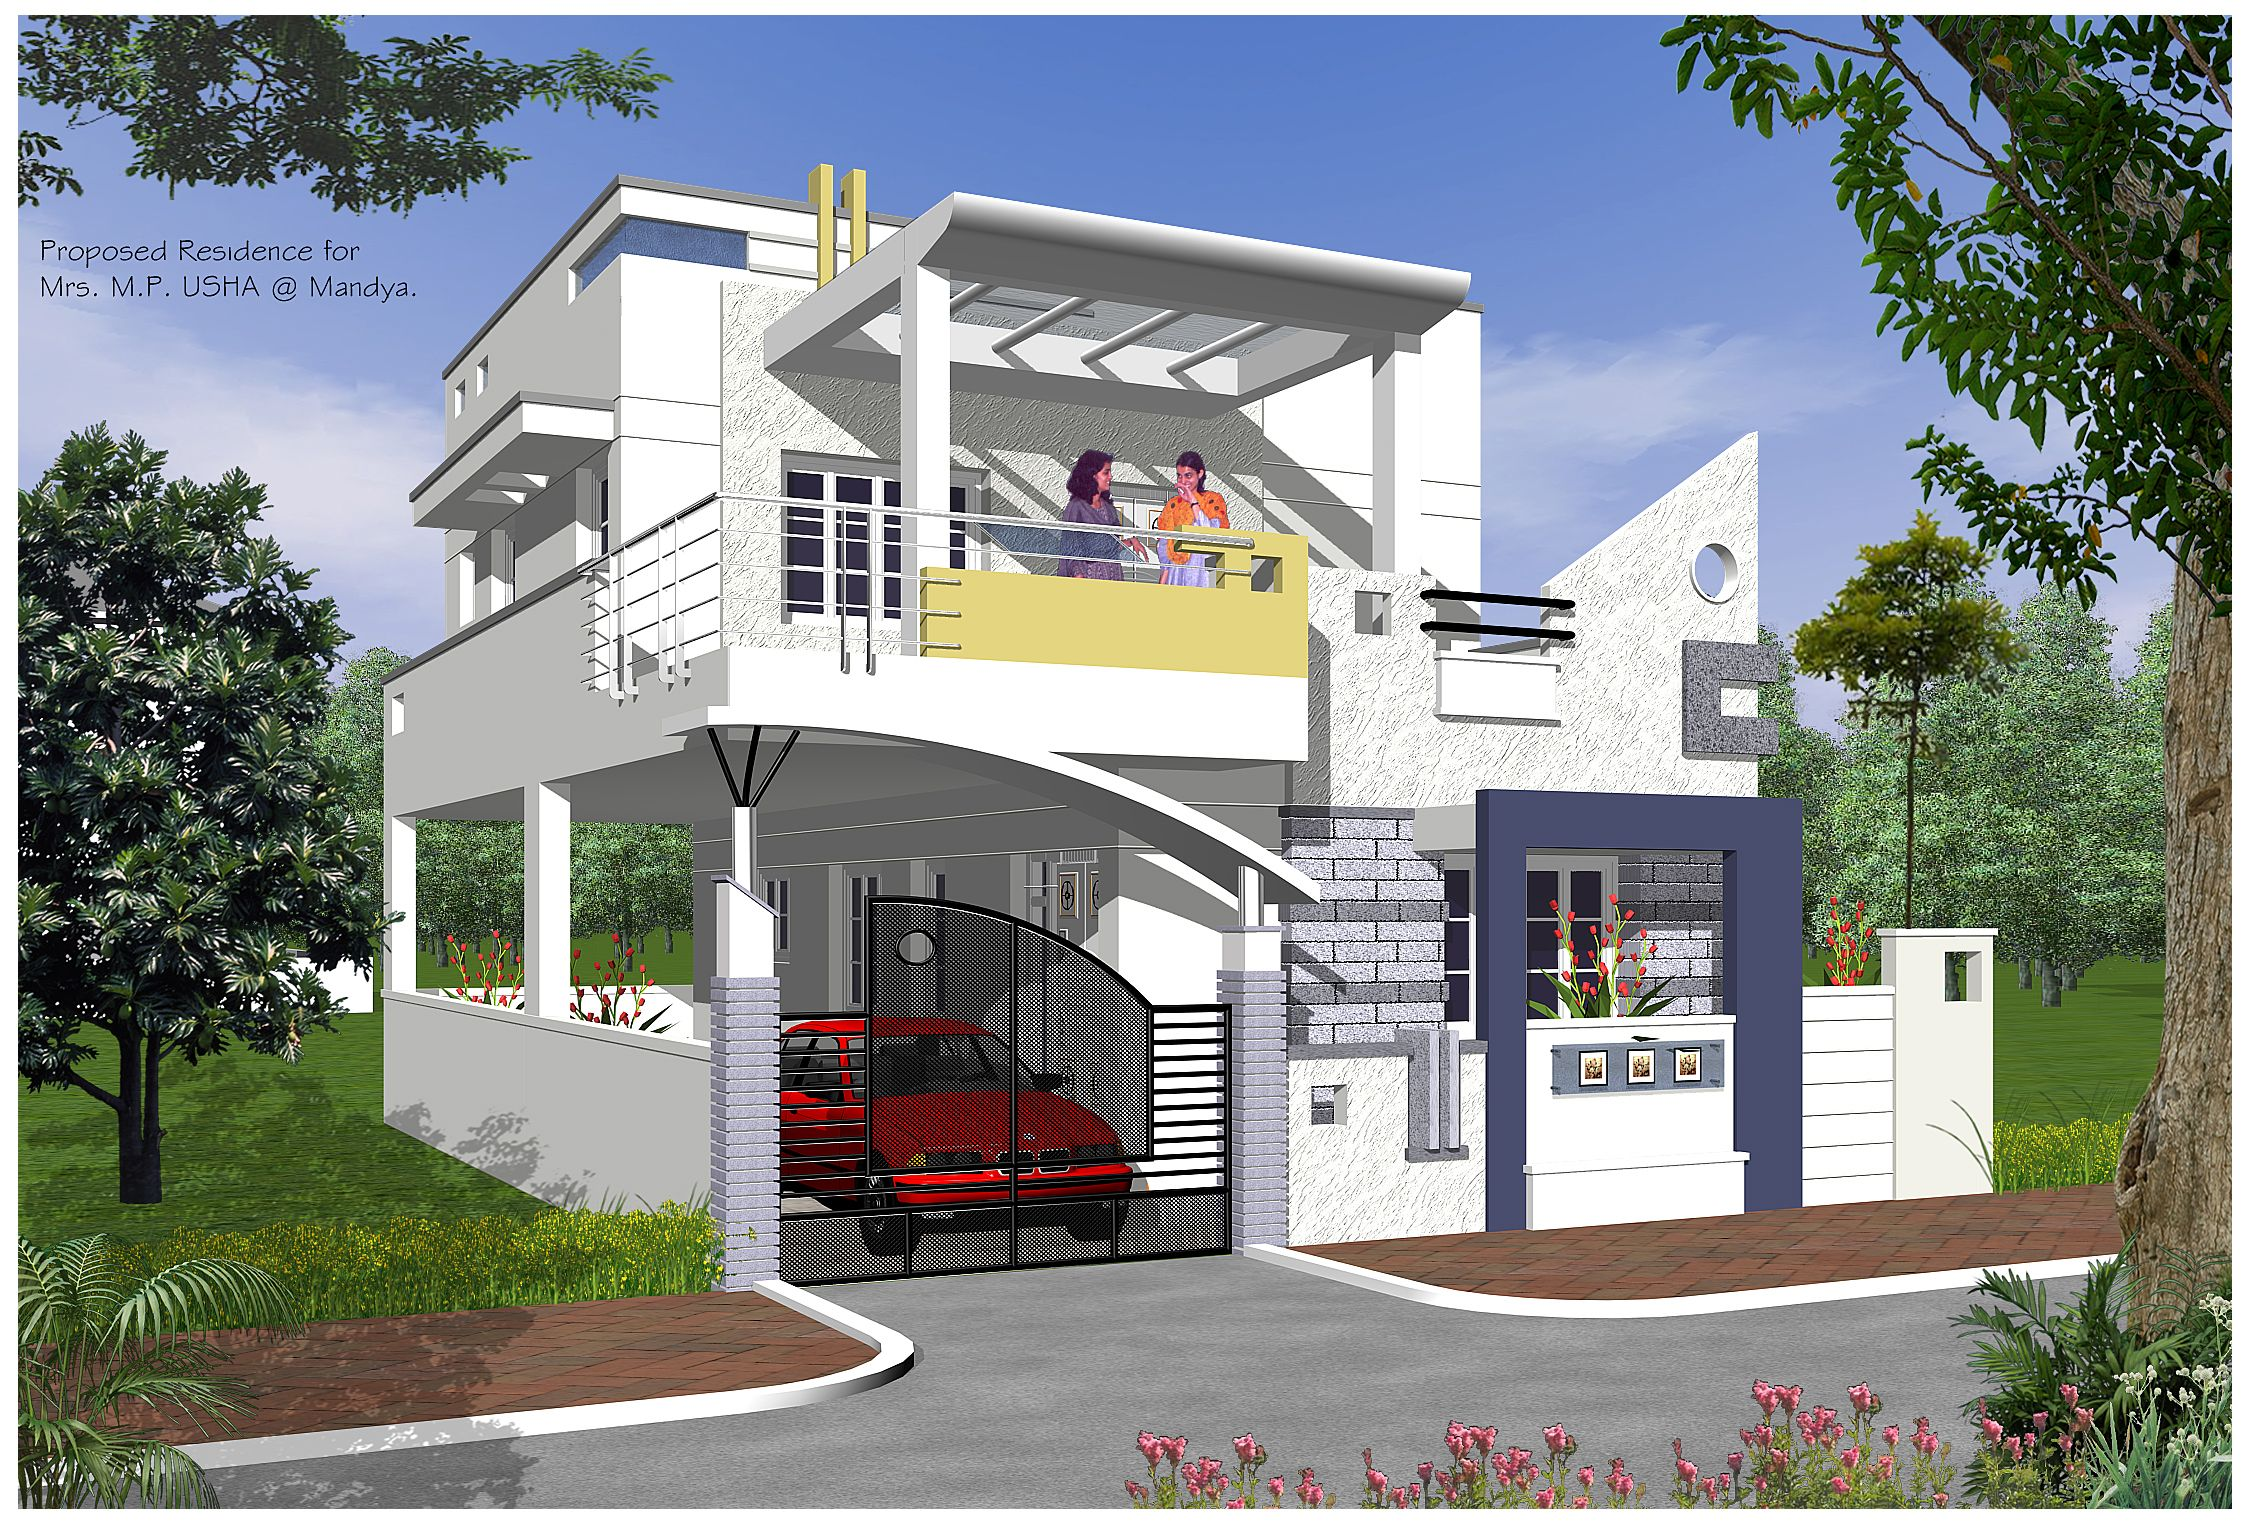 c792e69913303d56cd01c9ecde379dff cool contemporary home designs india stylendesigns com,Free House Plans India